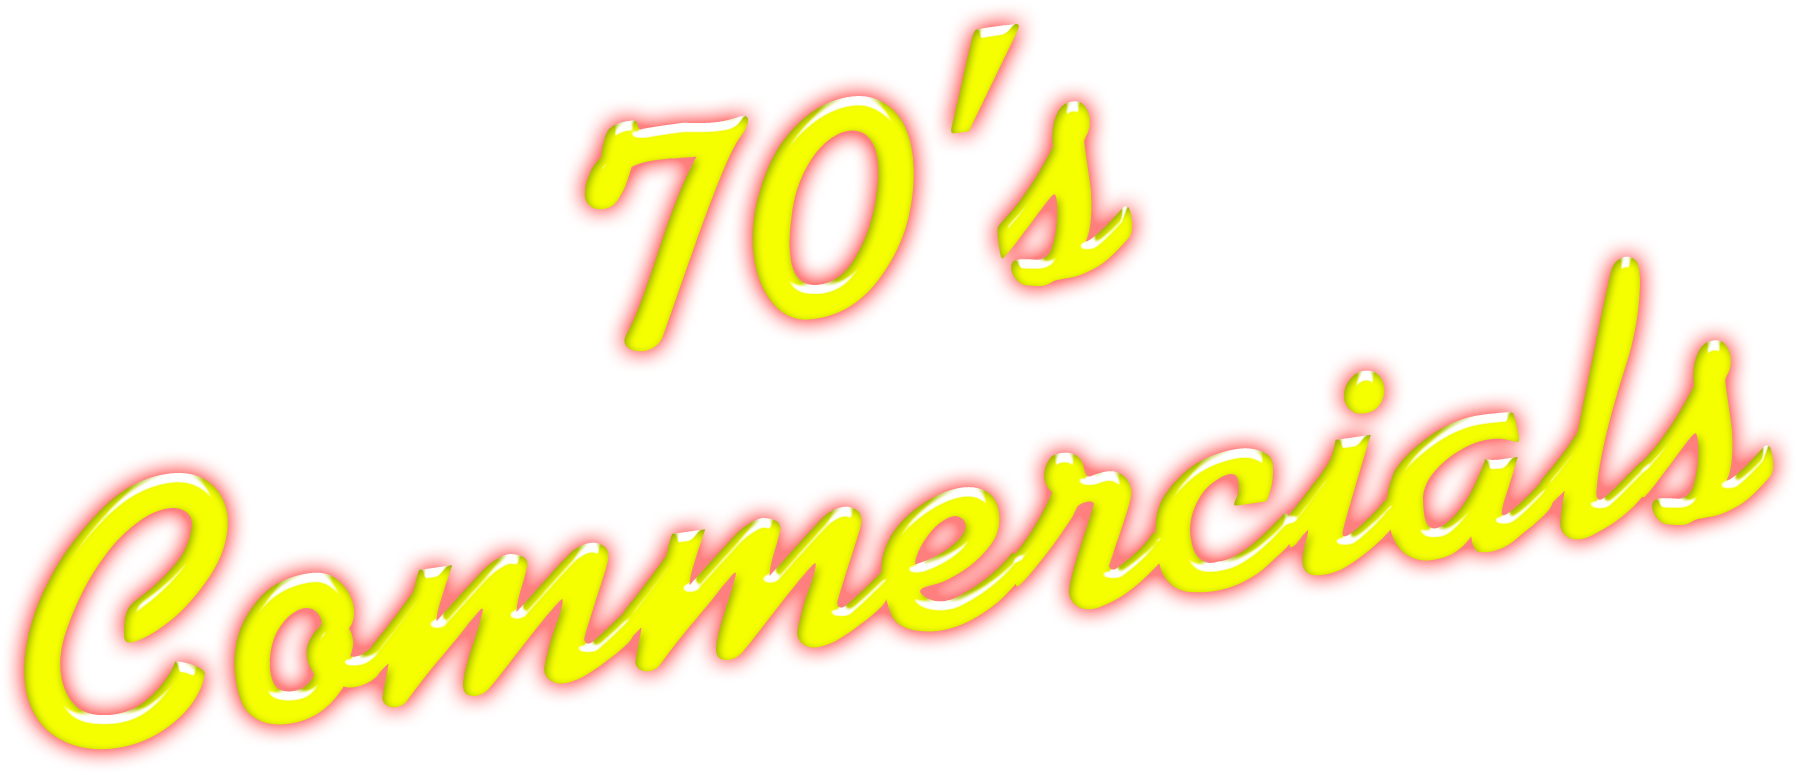 #19 Bonus Disc - 70's Commercials Disc 1